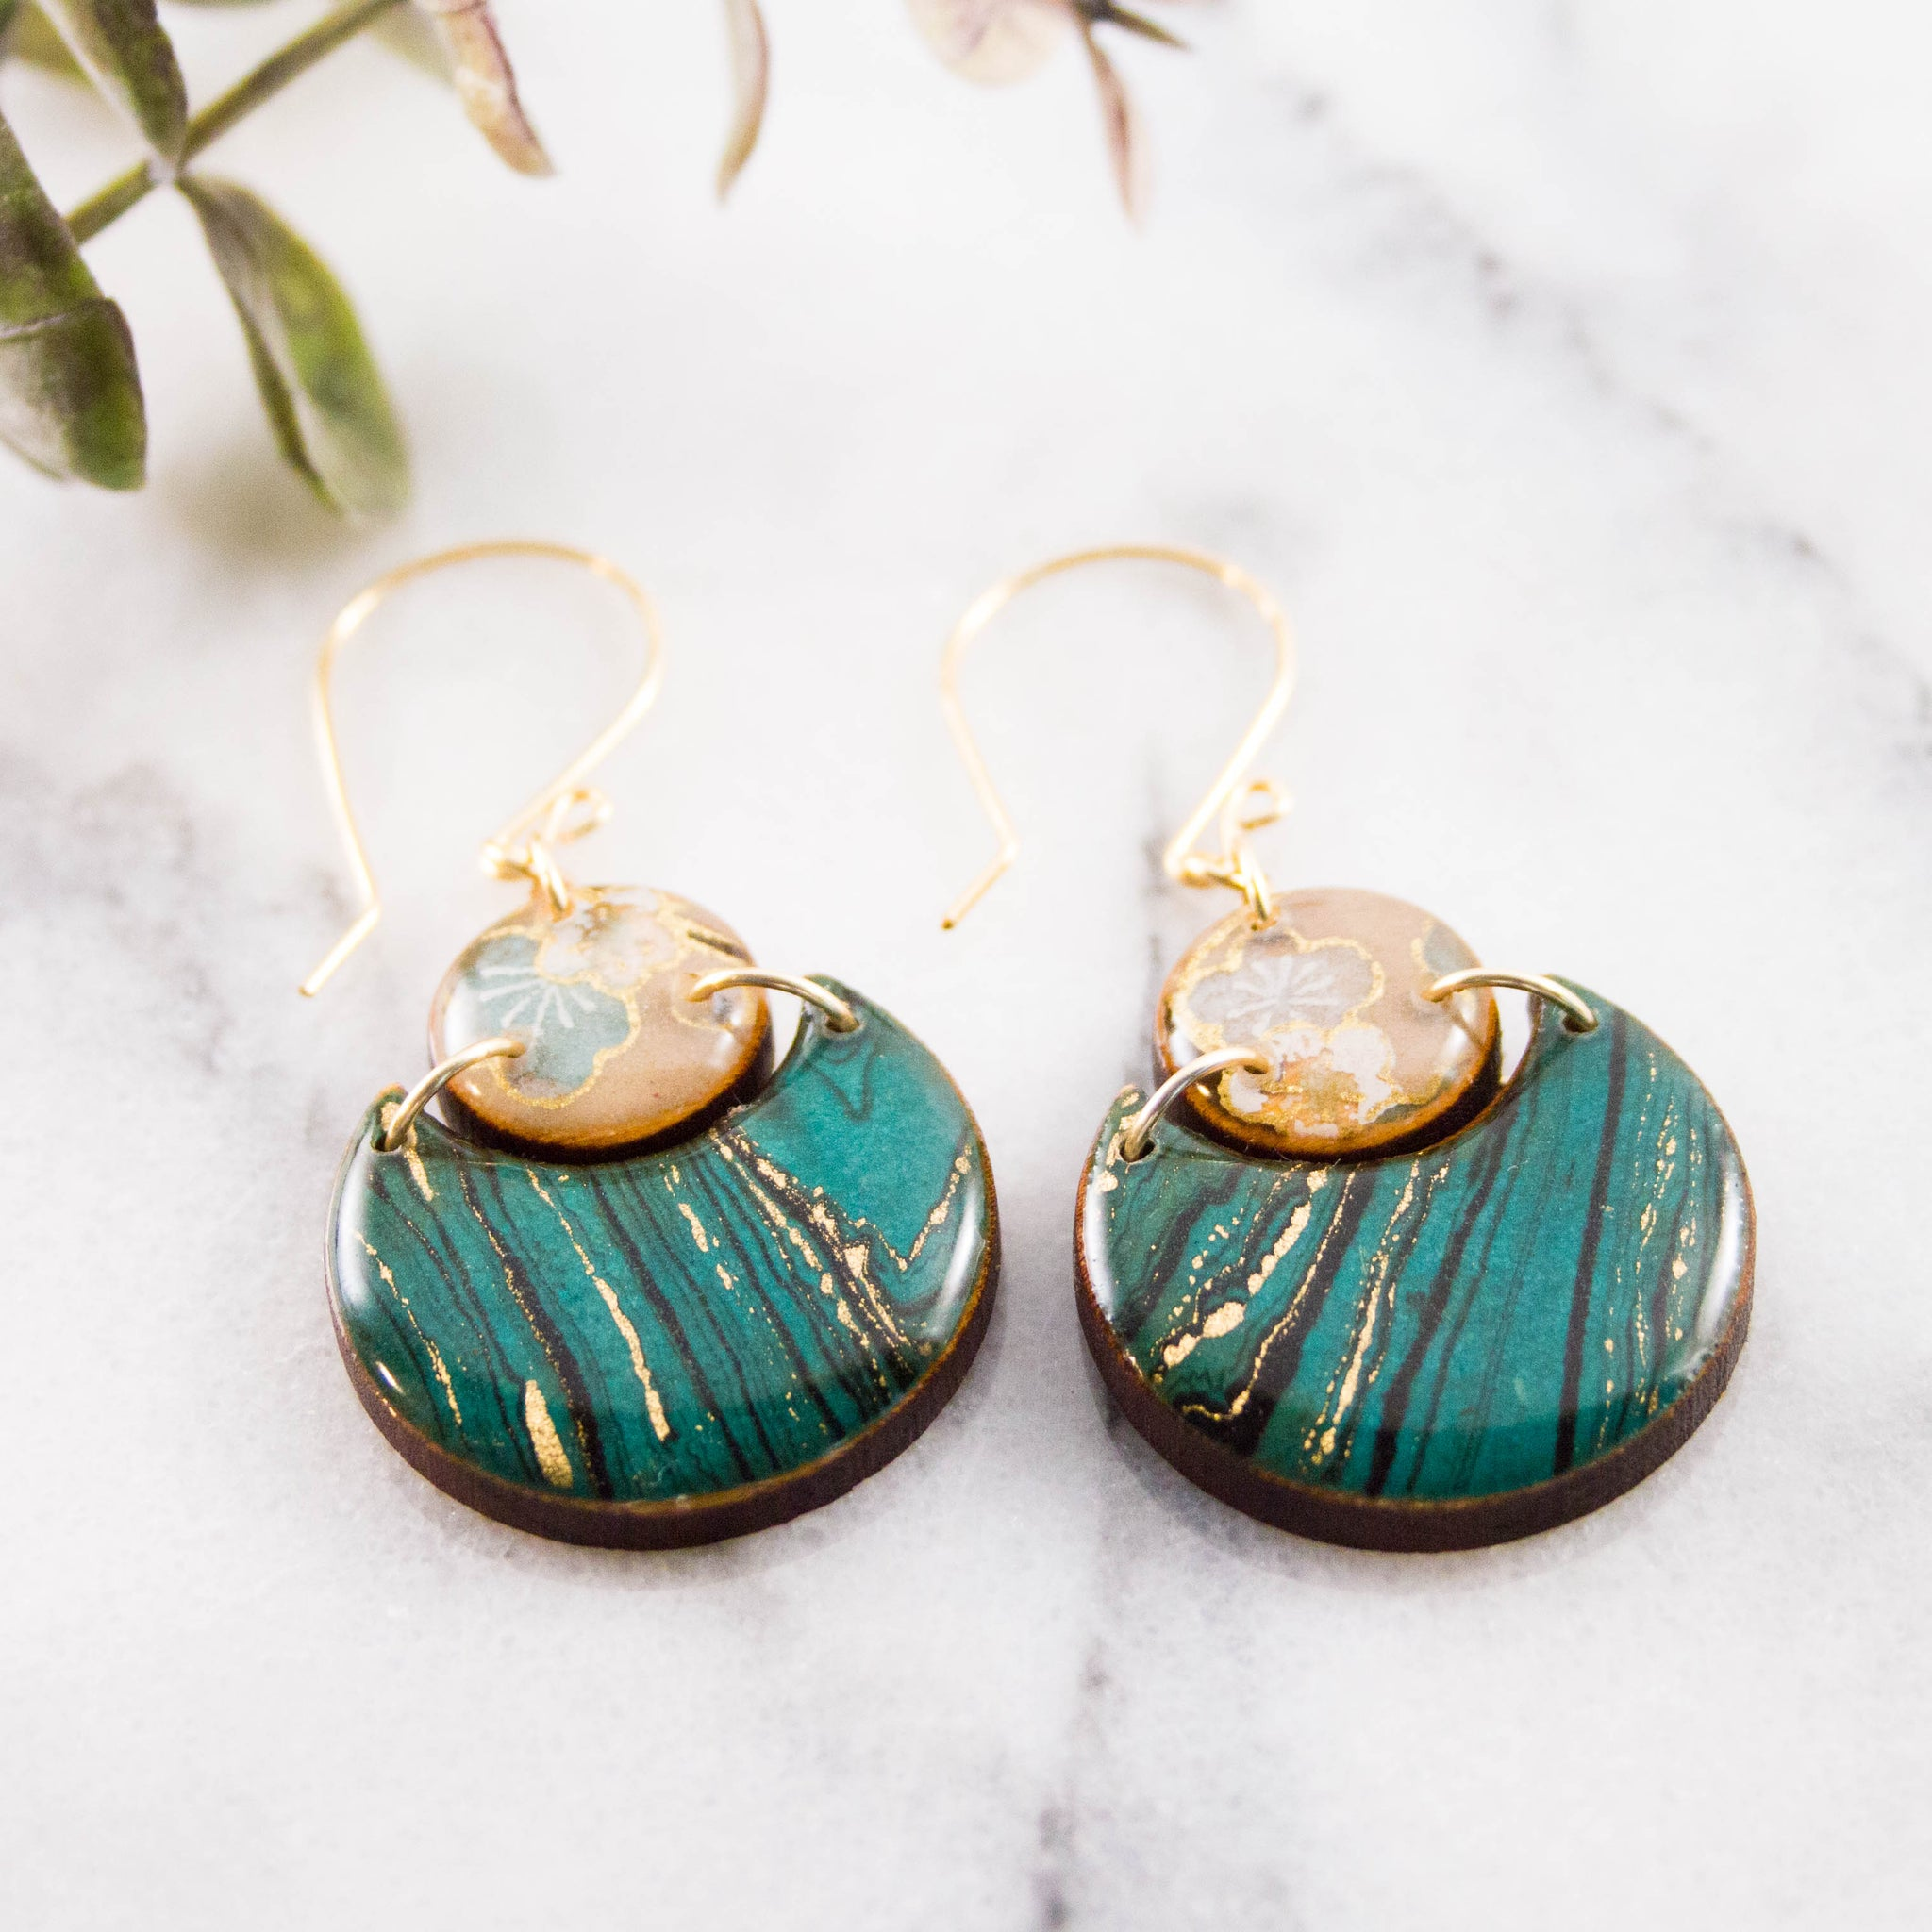 Japanese Double Circle Earrings- Turquoise Marble